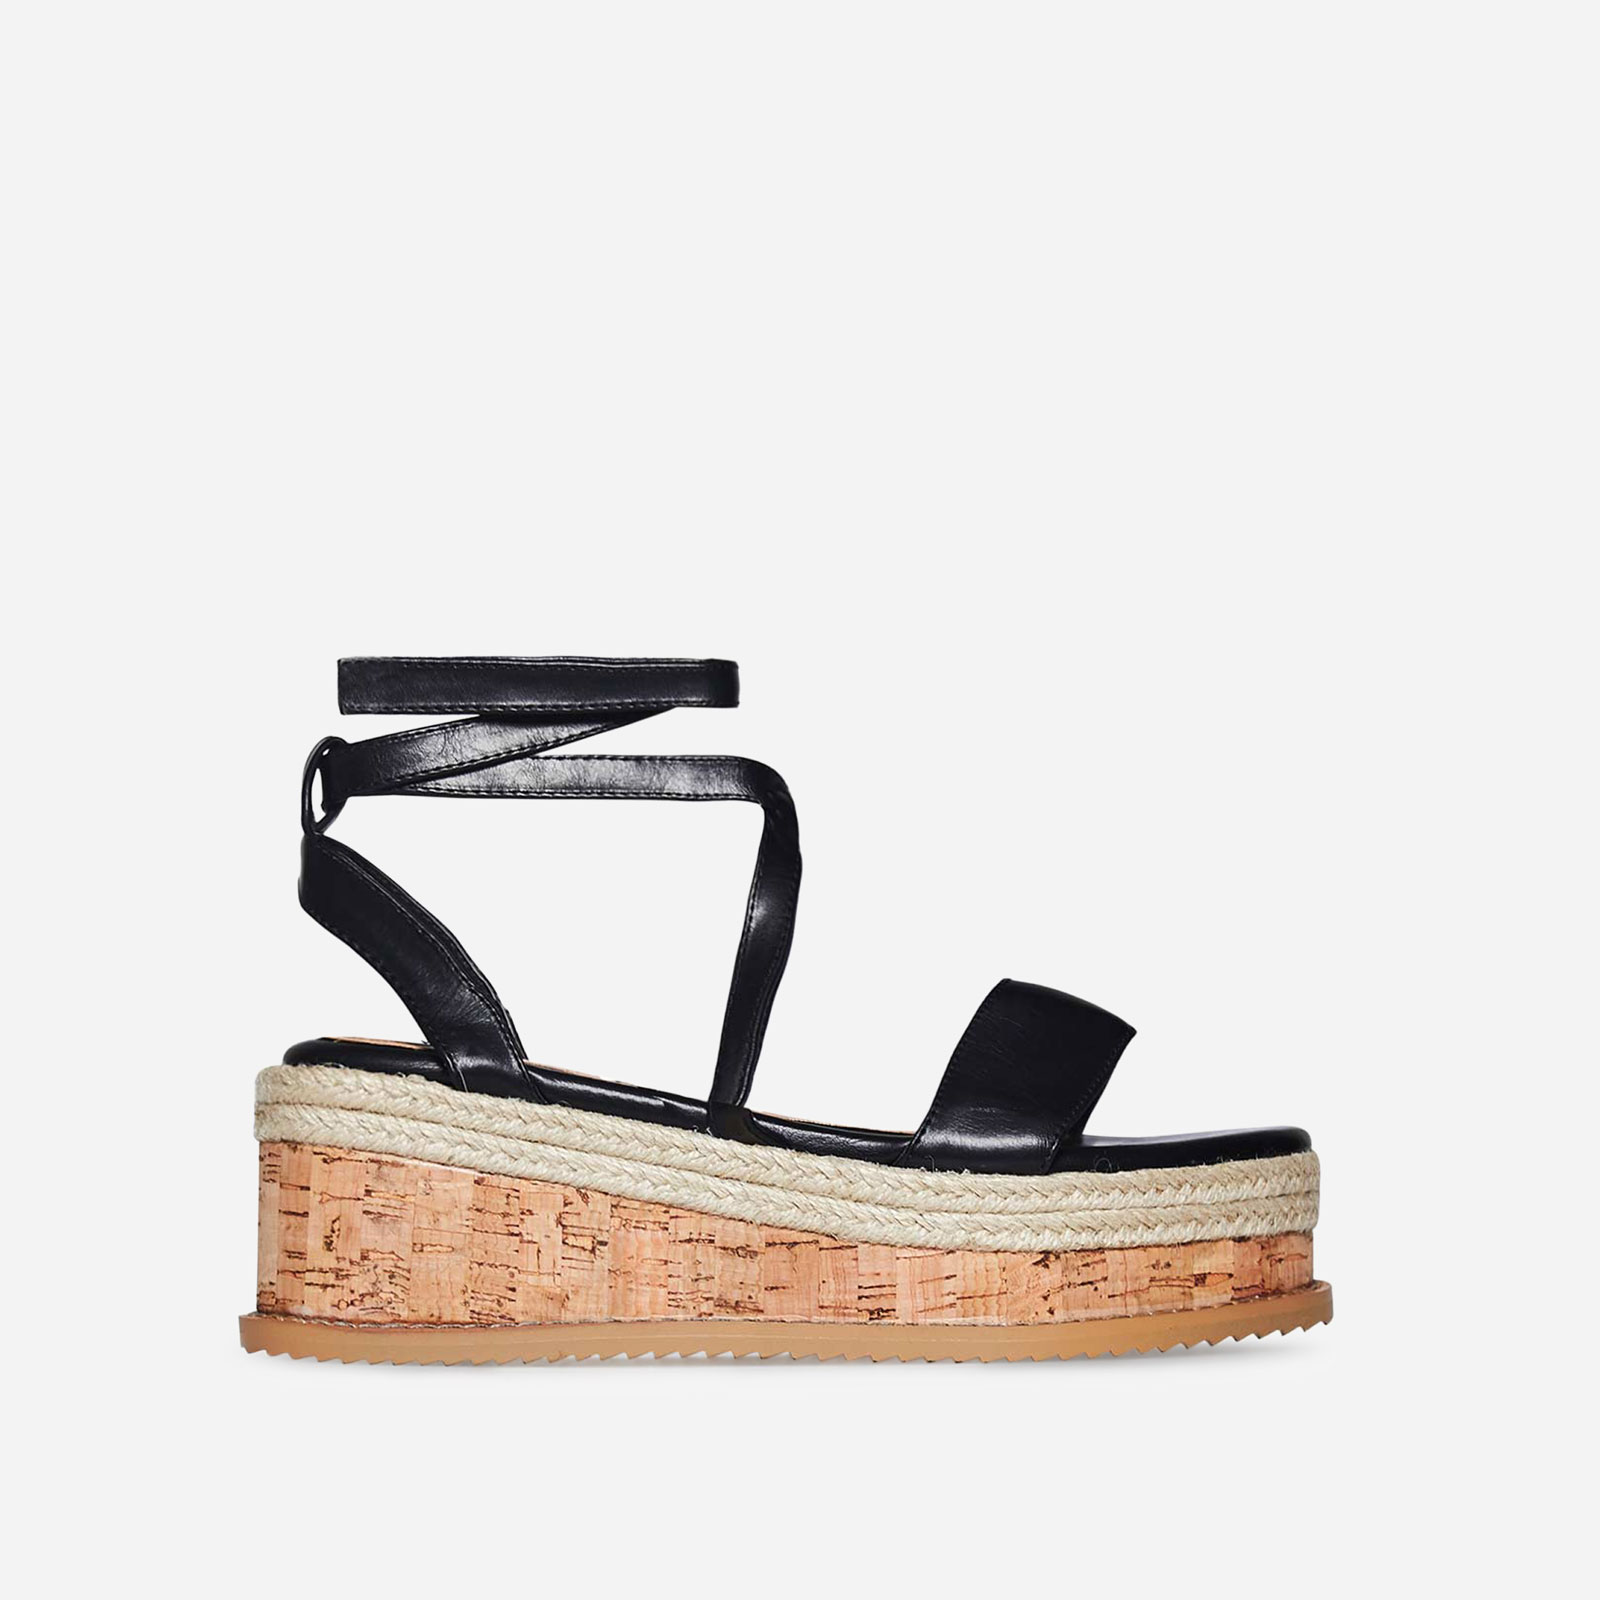 Abigail Strappy Espadrille Flatform In Black Faux Leather Image 1